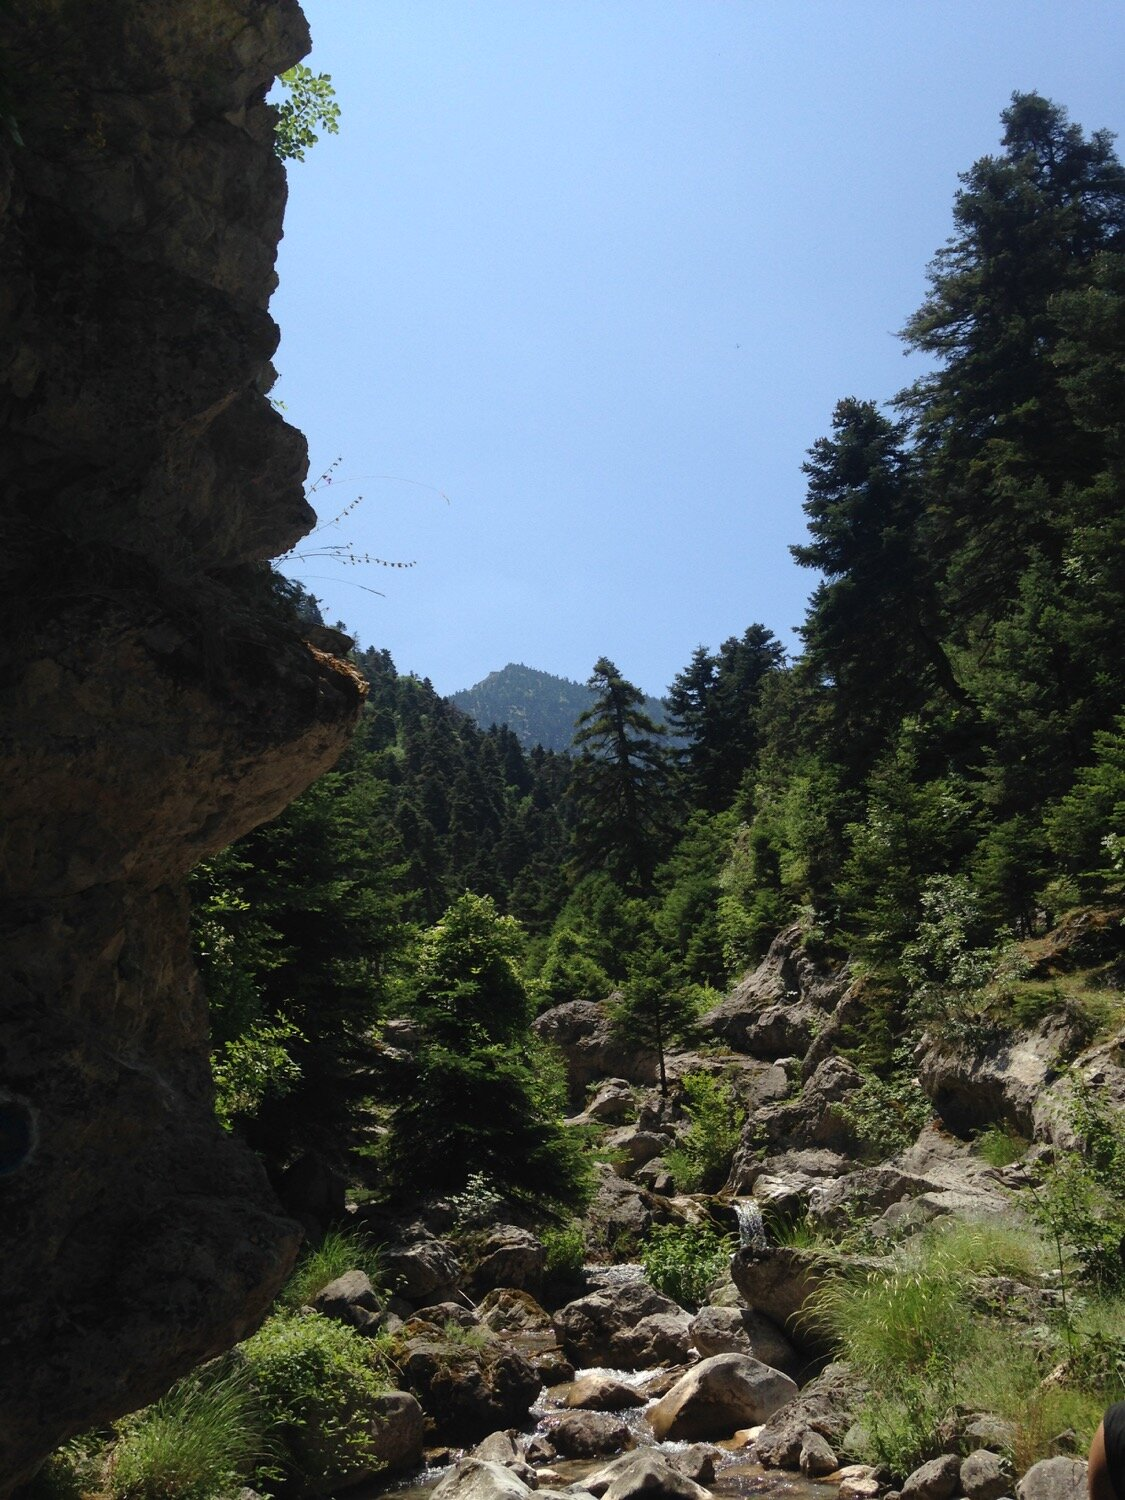 Trees lining a rocky river bed on Mount Parnassos